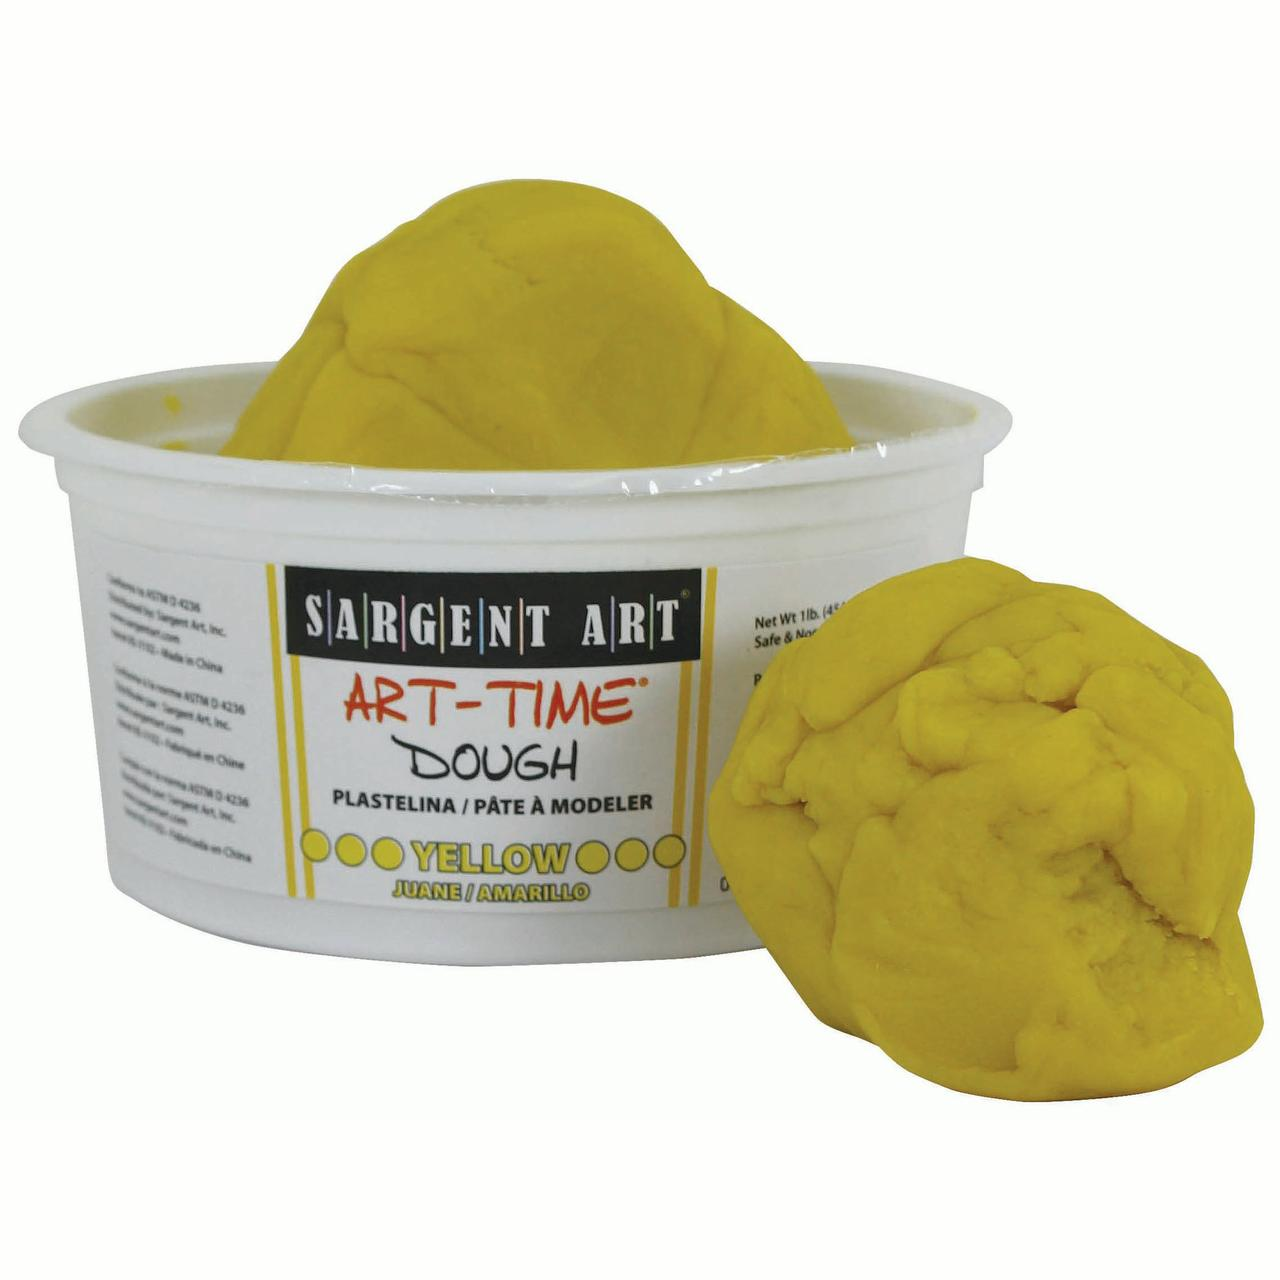 Art-Time® Dough, Yellow, 1lb Tub, Pack of 6